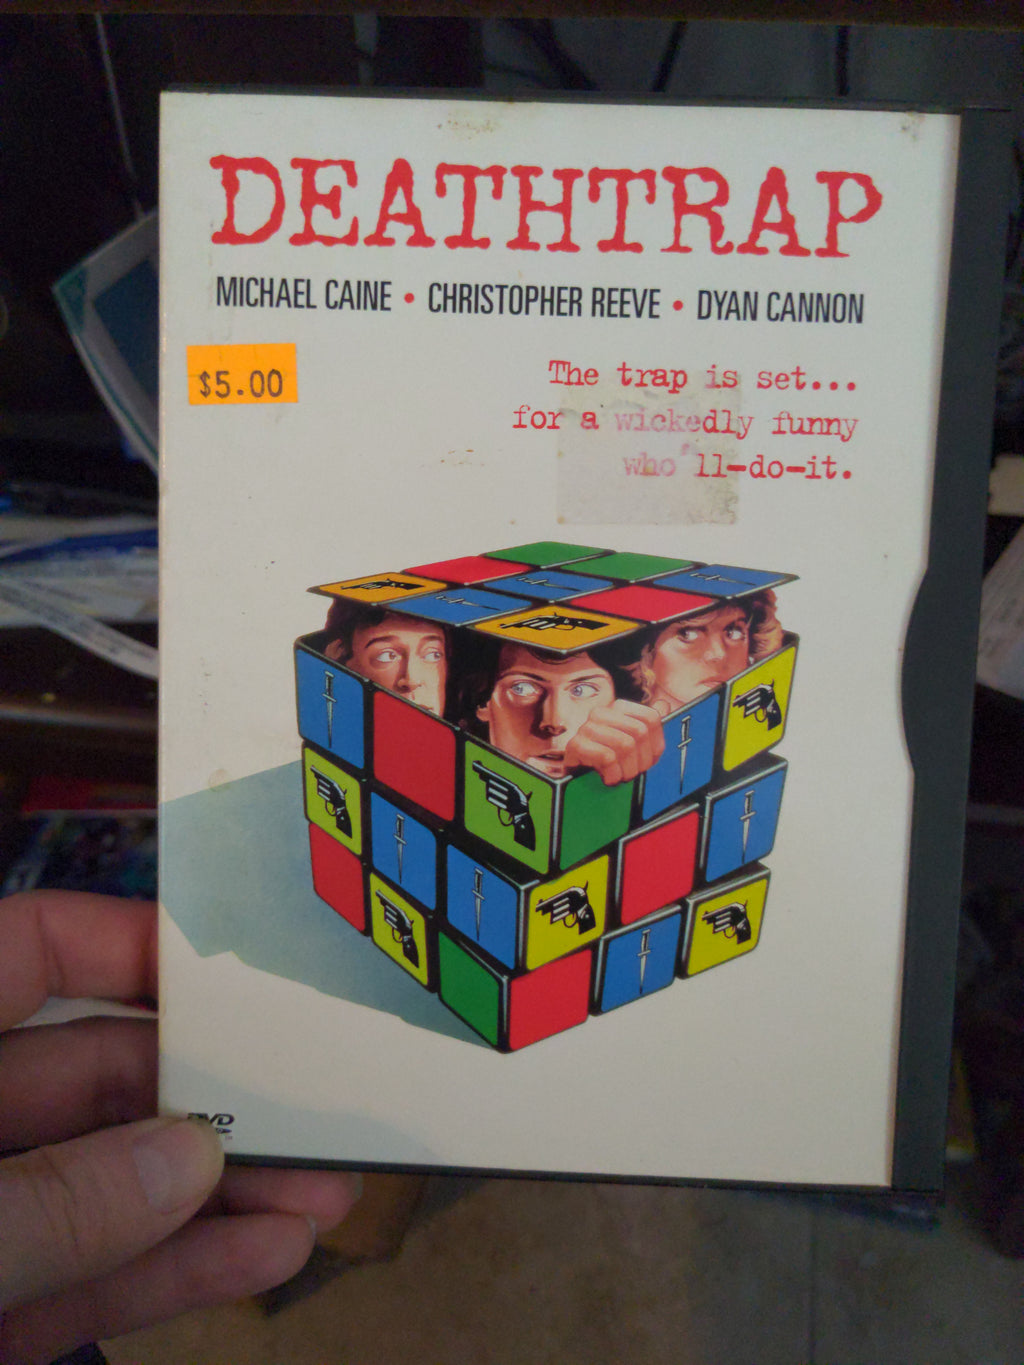 Deathtrap Snapcase DVD - Christopher Reeve - Dyan Cannon - Michael Caine